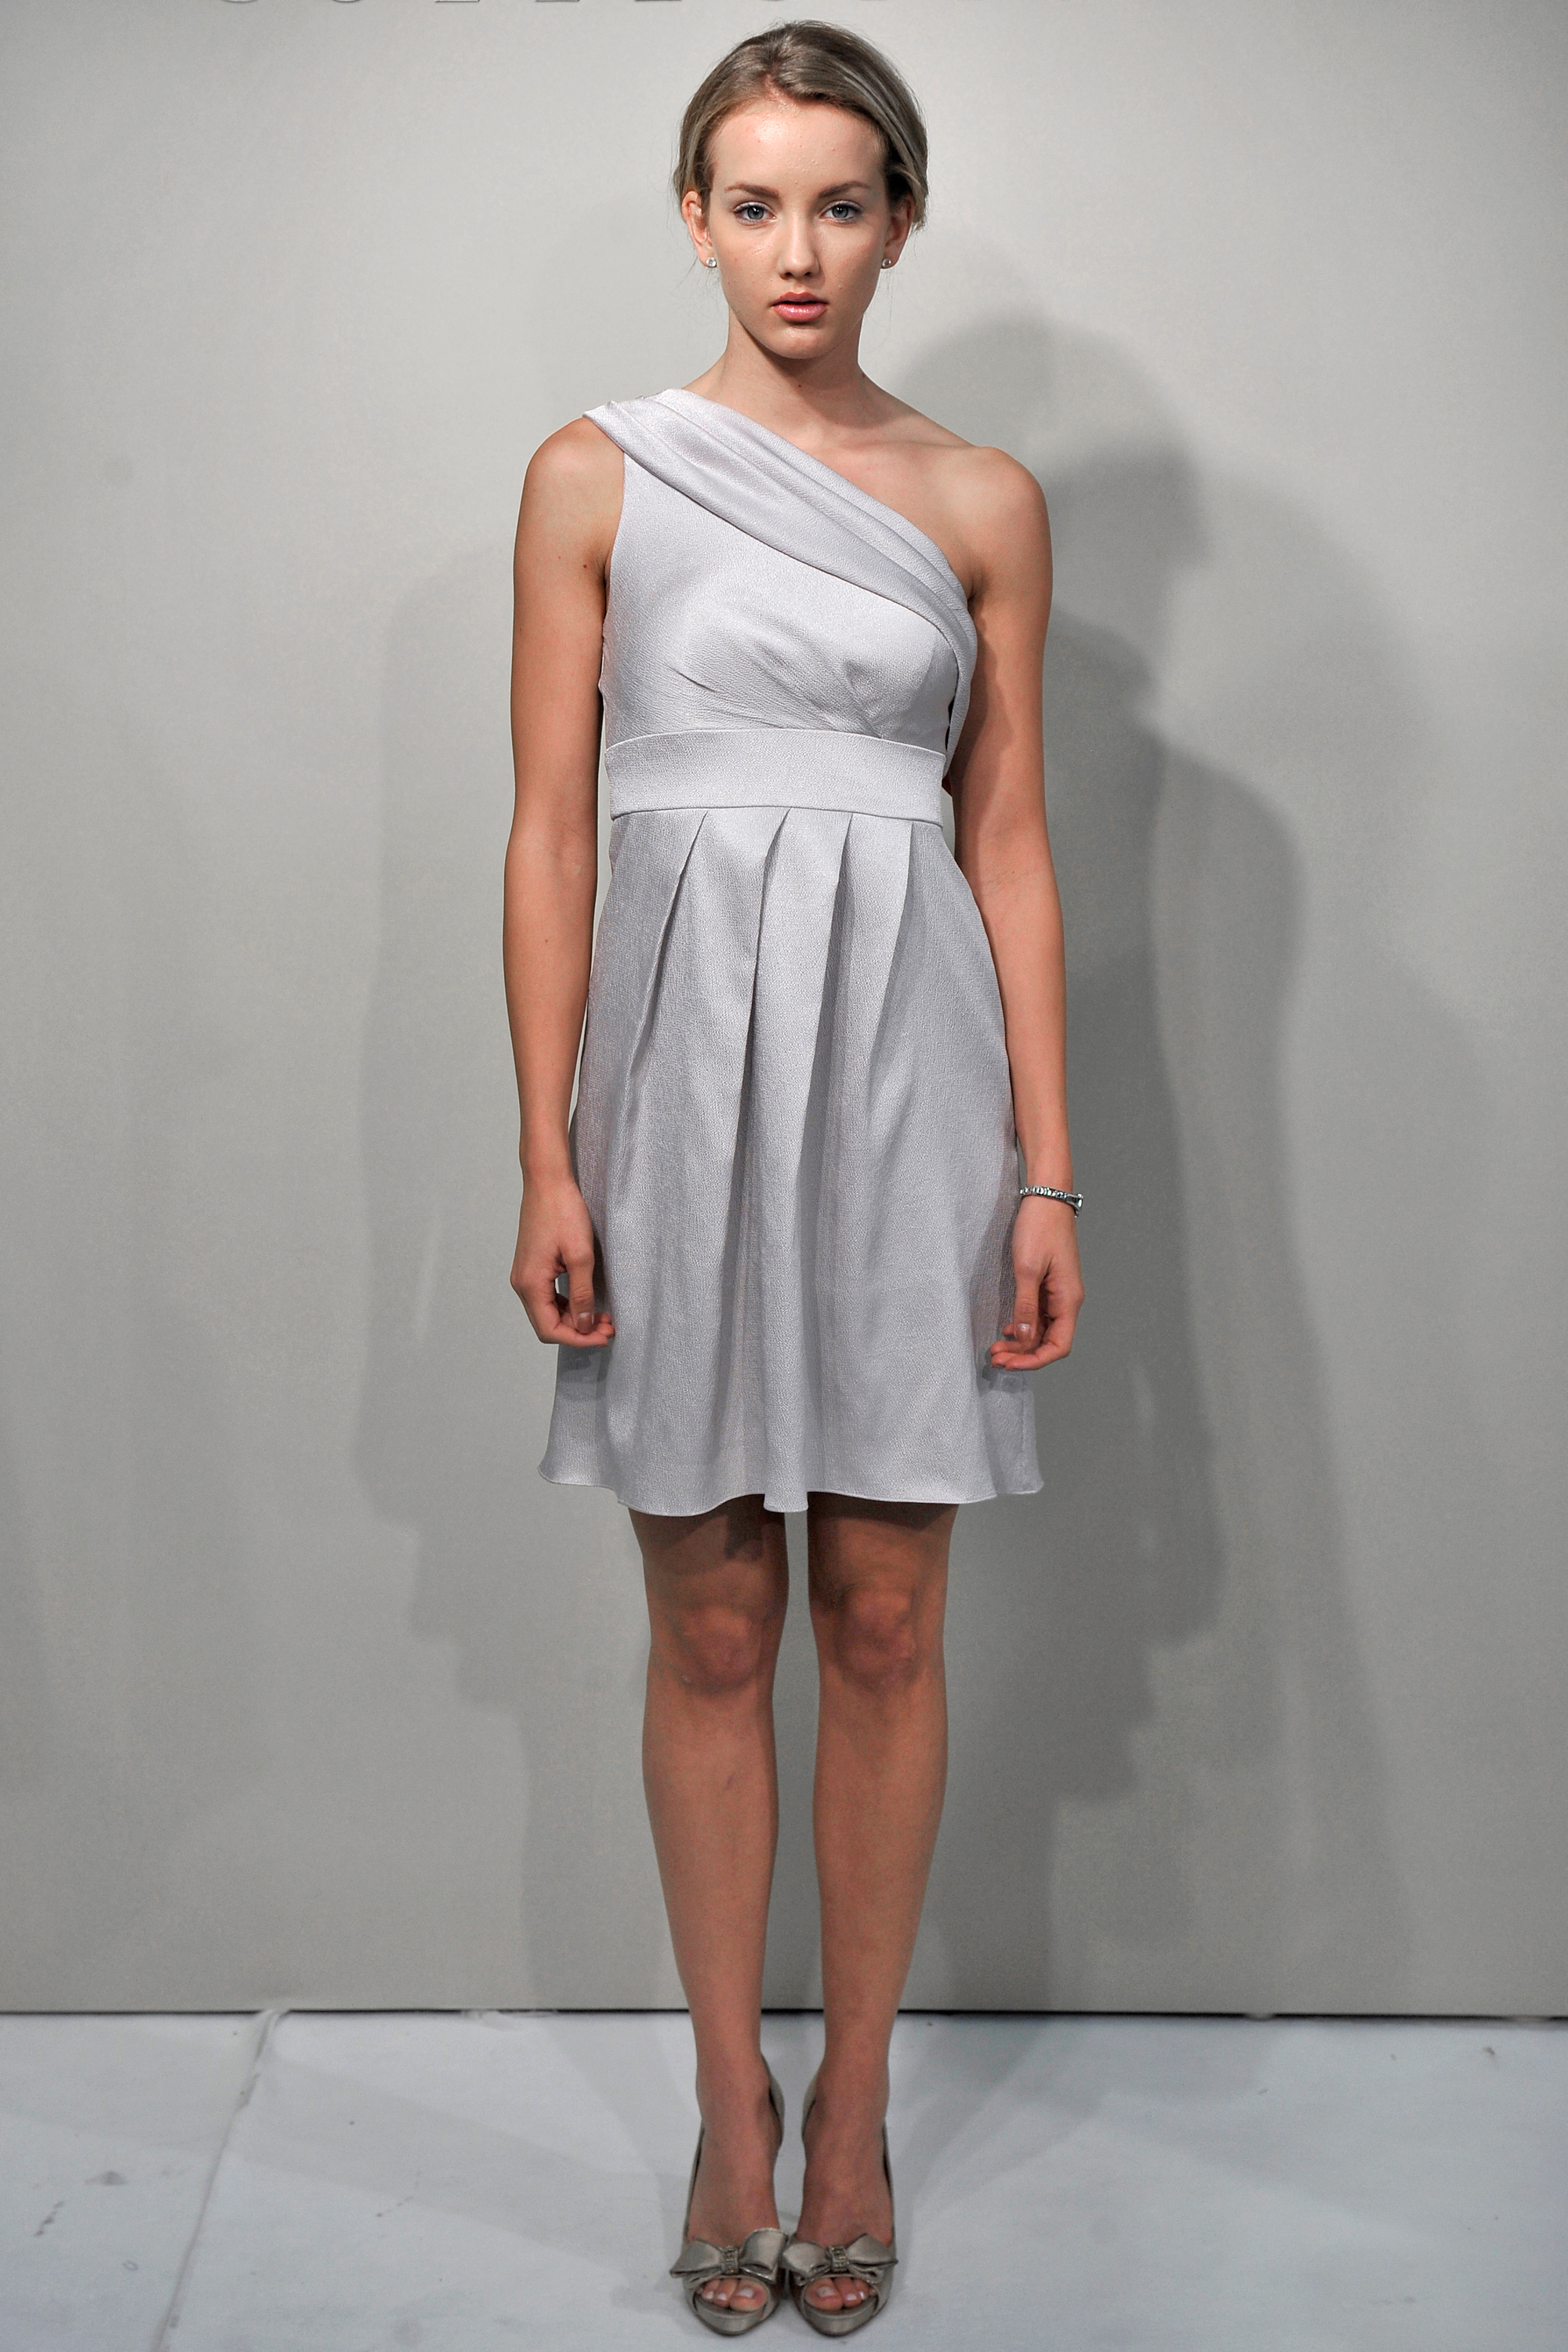 Short Gray Bridesmaid Dress